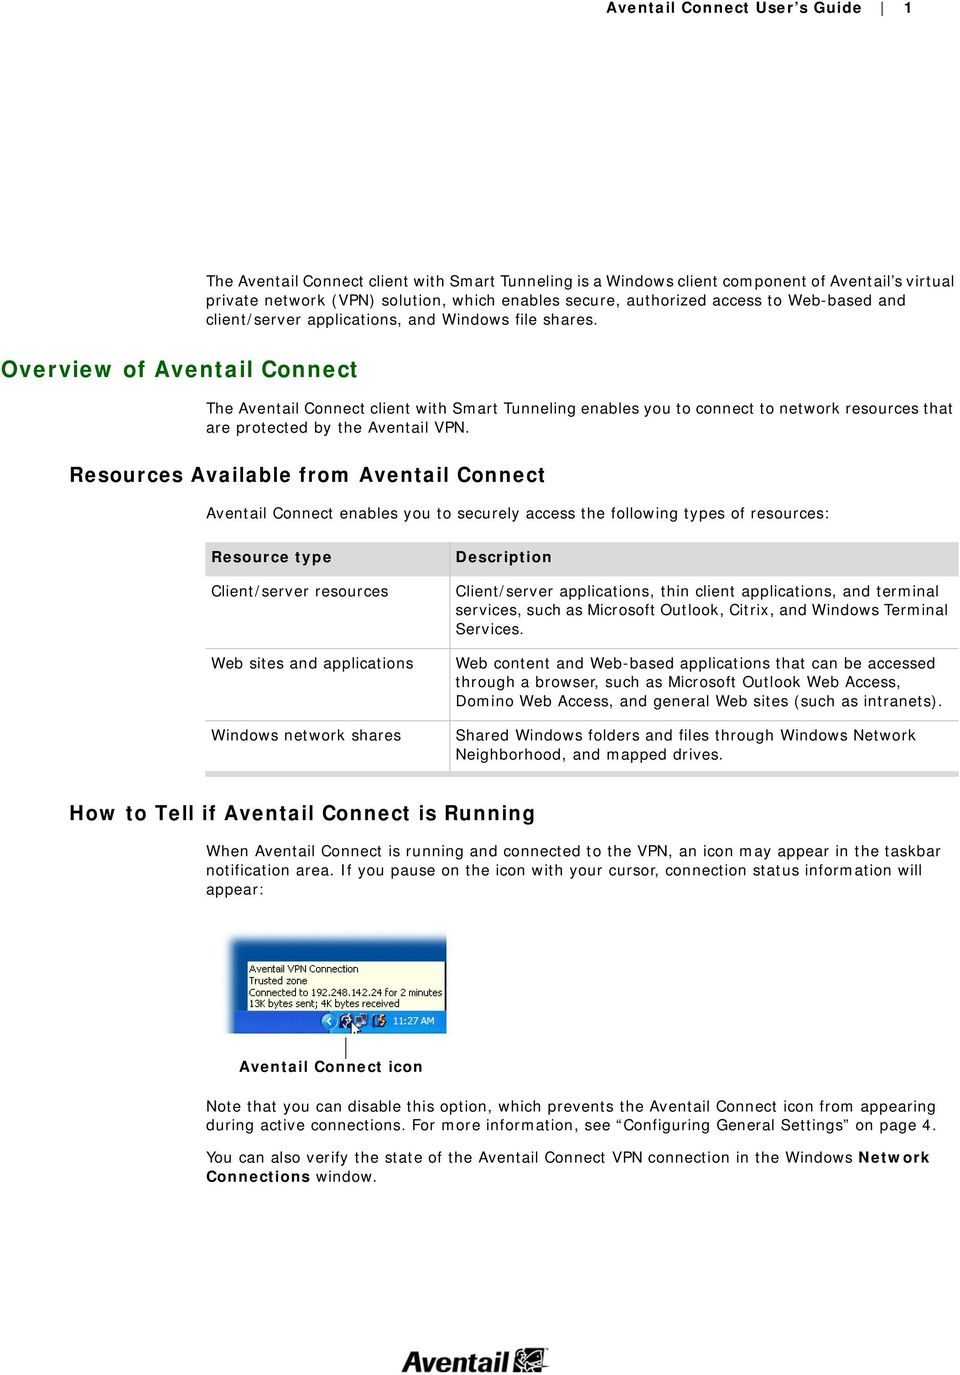 Overview of Aventail Connect The Aventail Connect client with Smart Tunneling enables you to connect to network resources that are protected by the Aventail VPN.